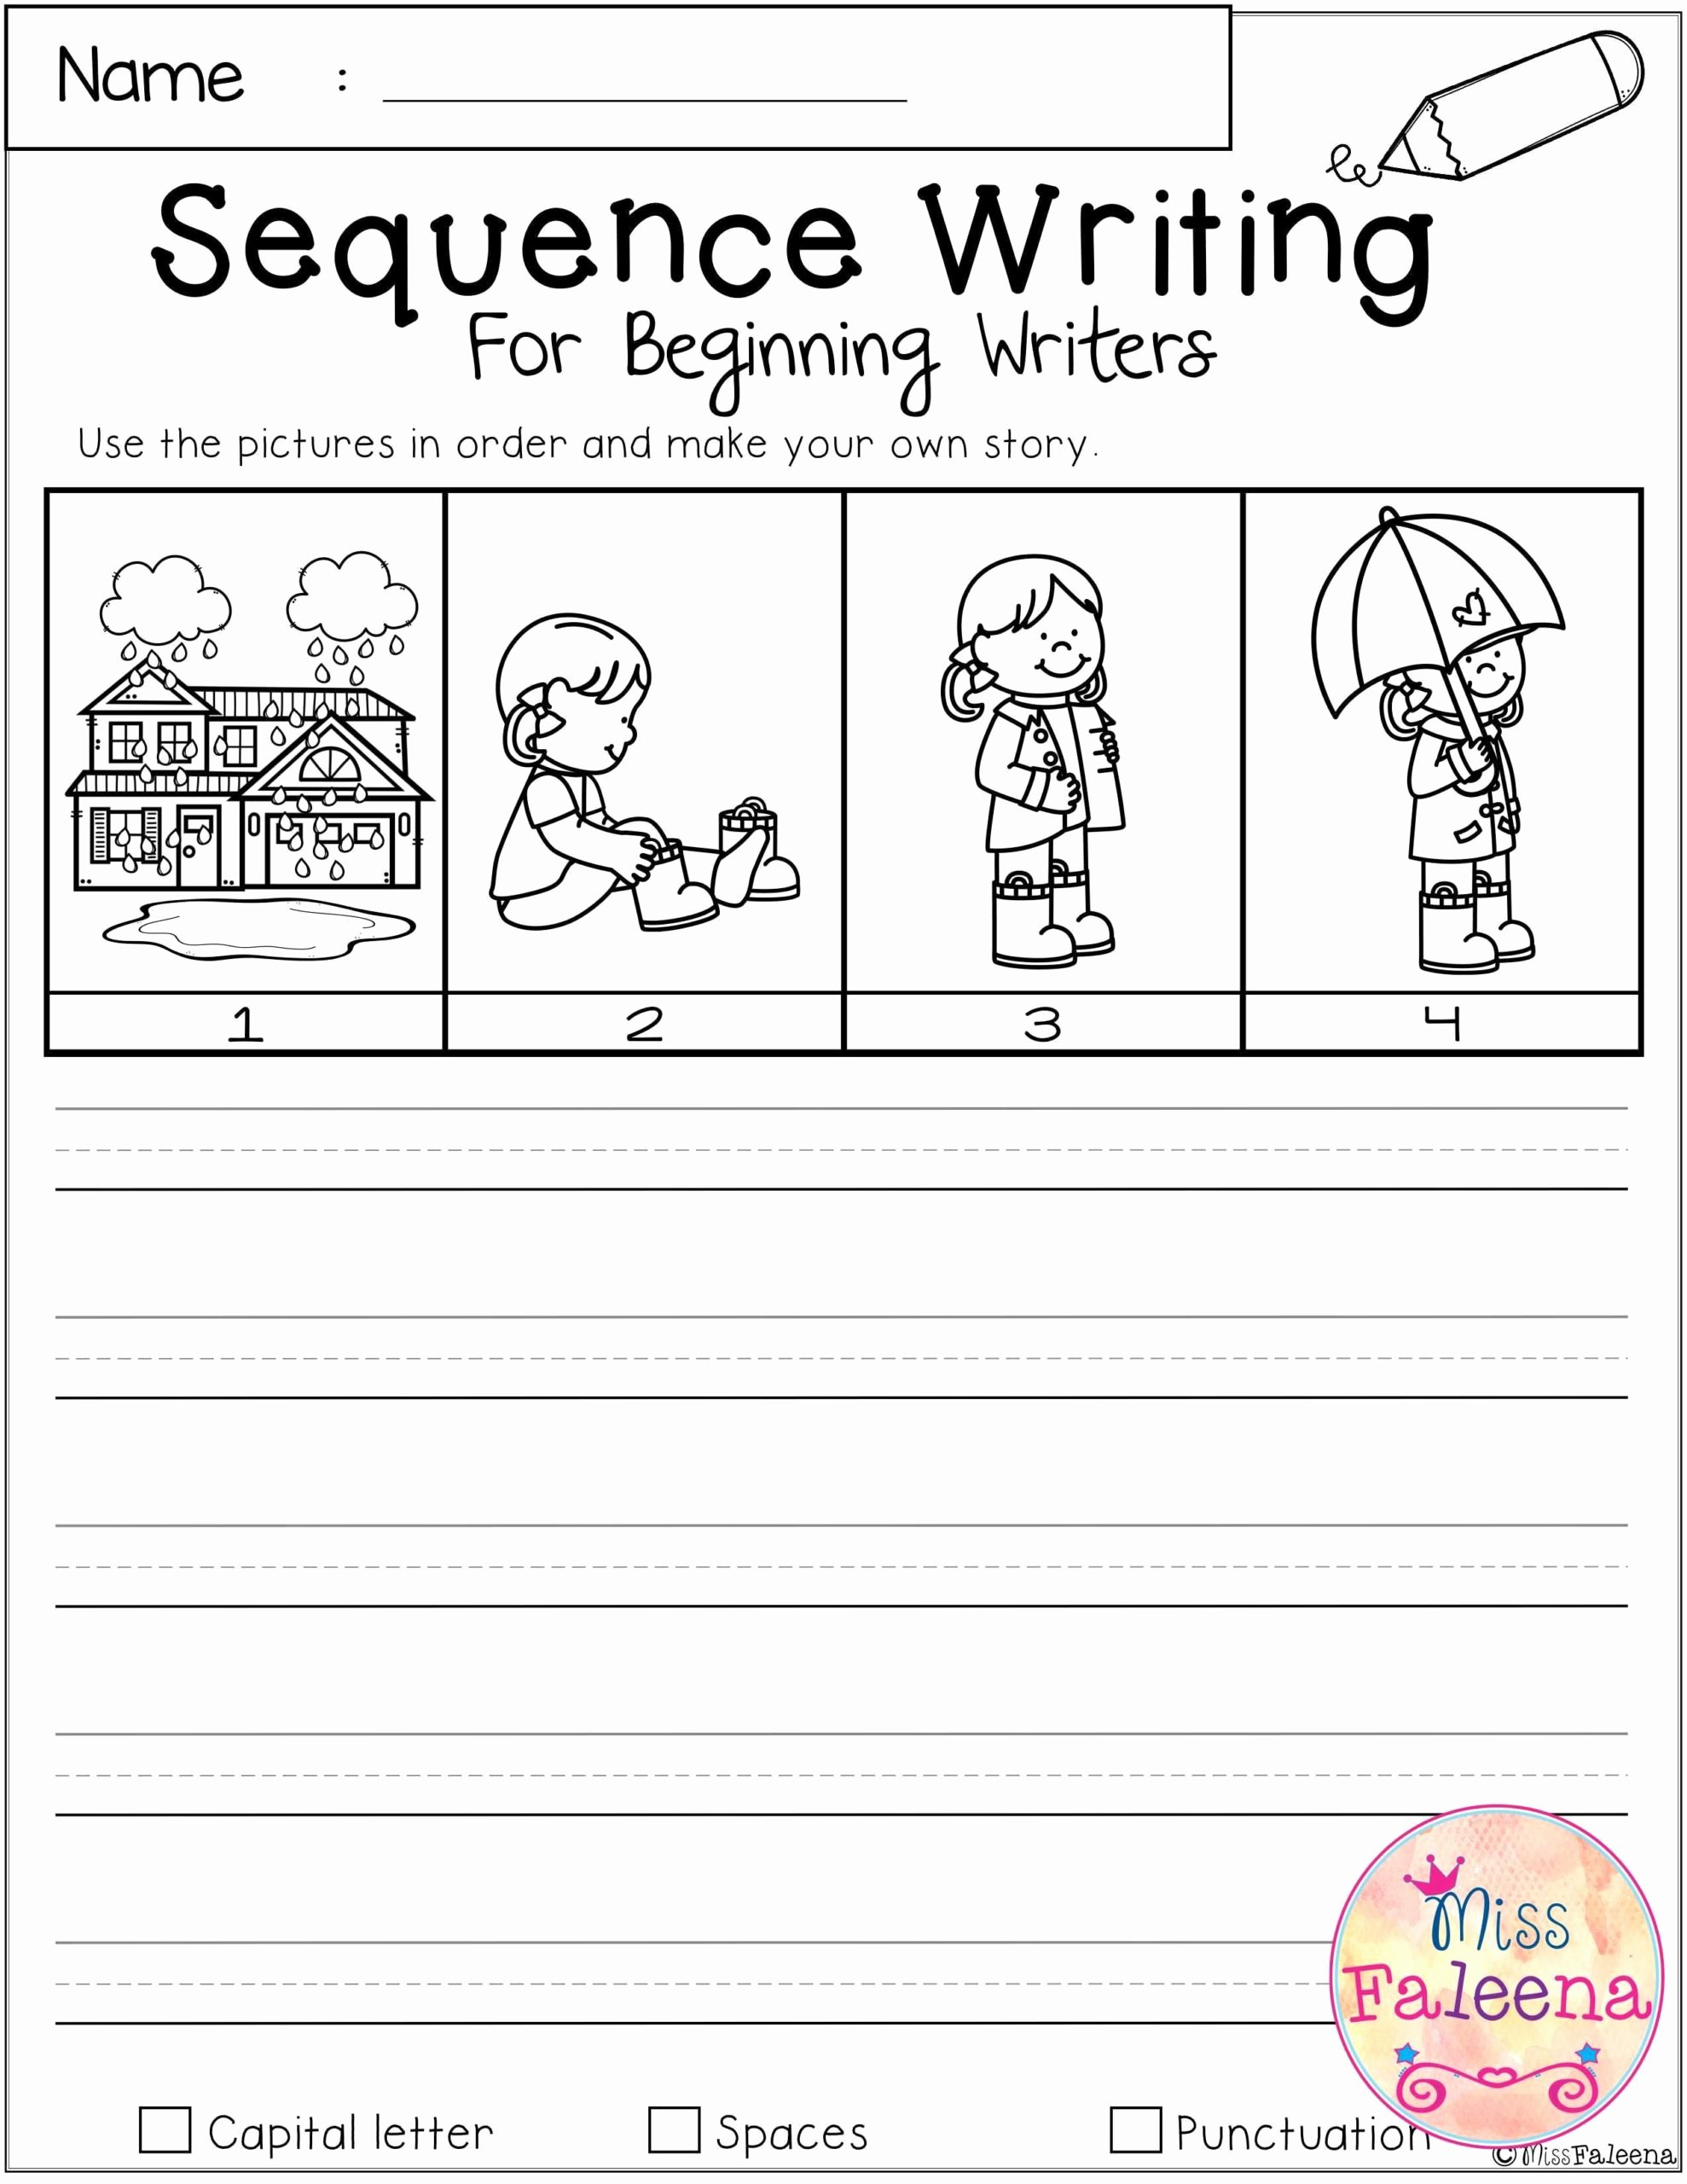 Story Sequencing Worksheets for Preschoolers Lovely March Sequence Writing for Beginning Writers Kindergarten